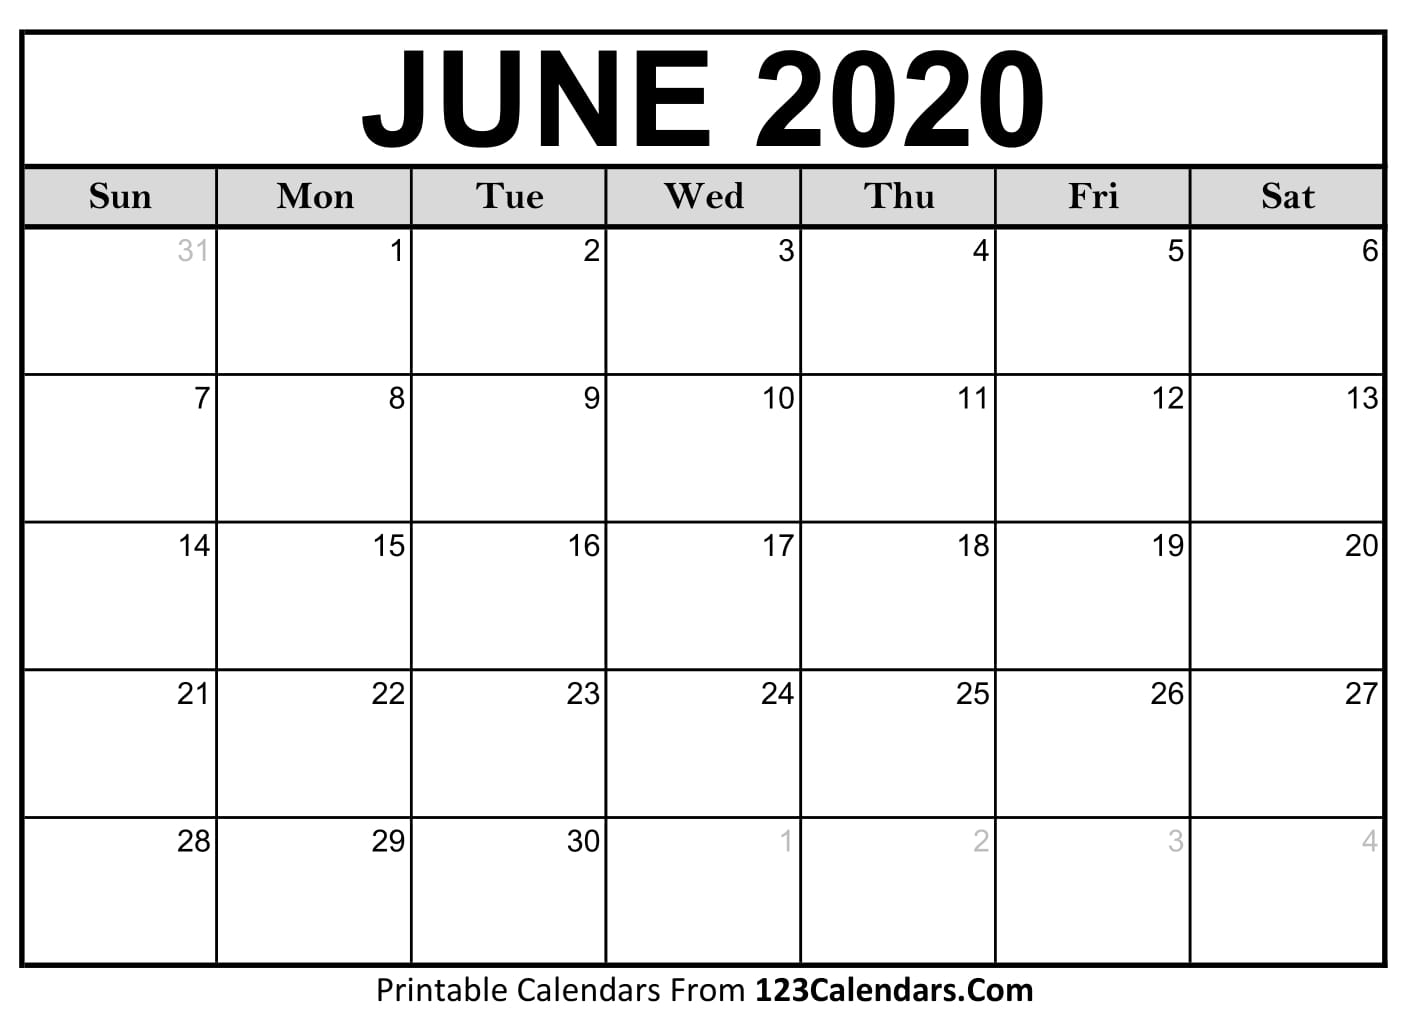 June 2020 Printable Calendar | 123Calendars with regard to 2020 Printable Liturgical Calendar Free